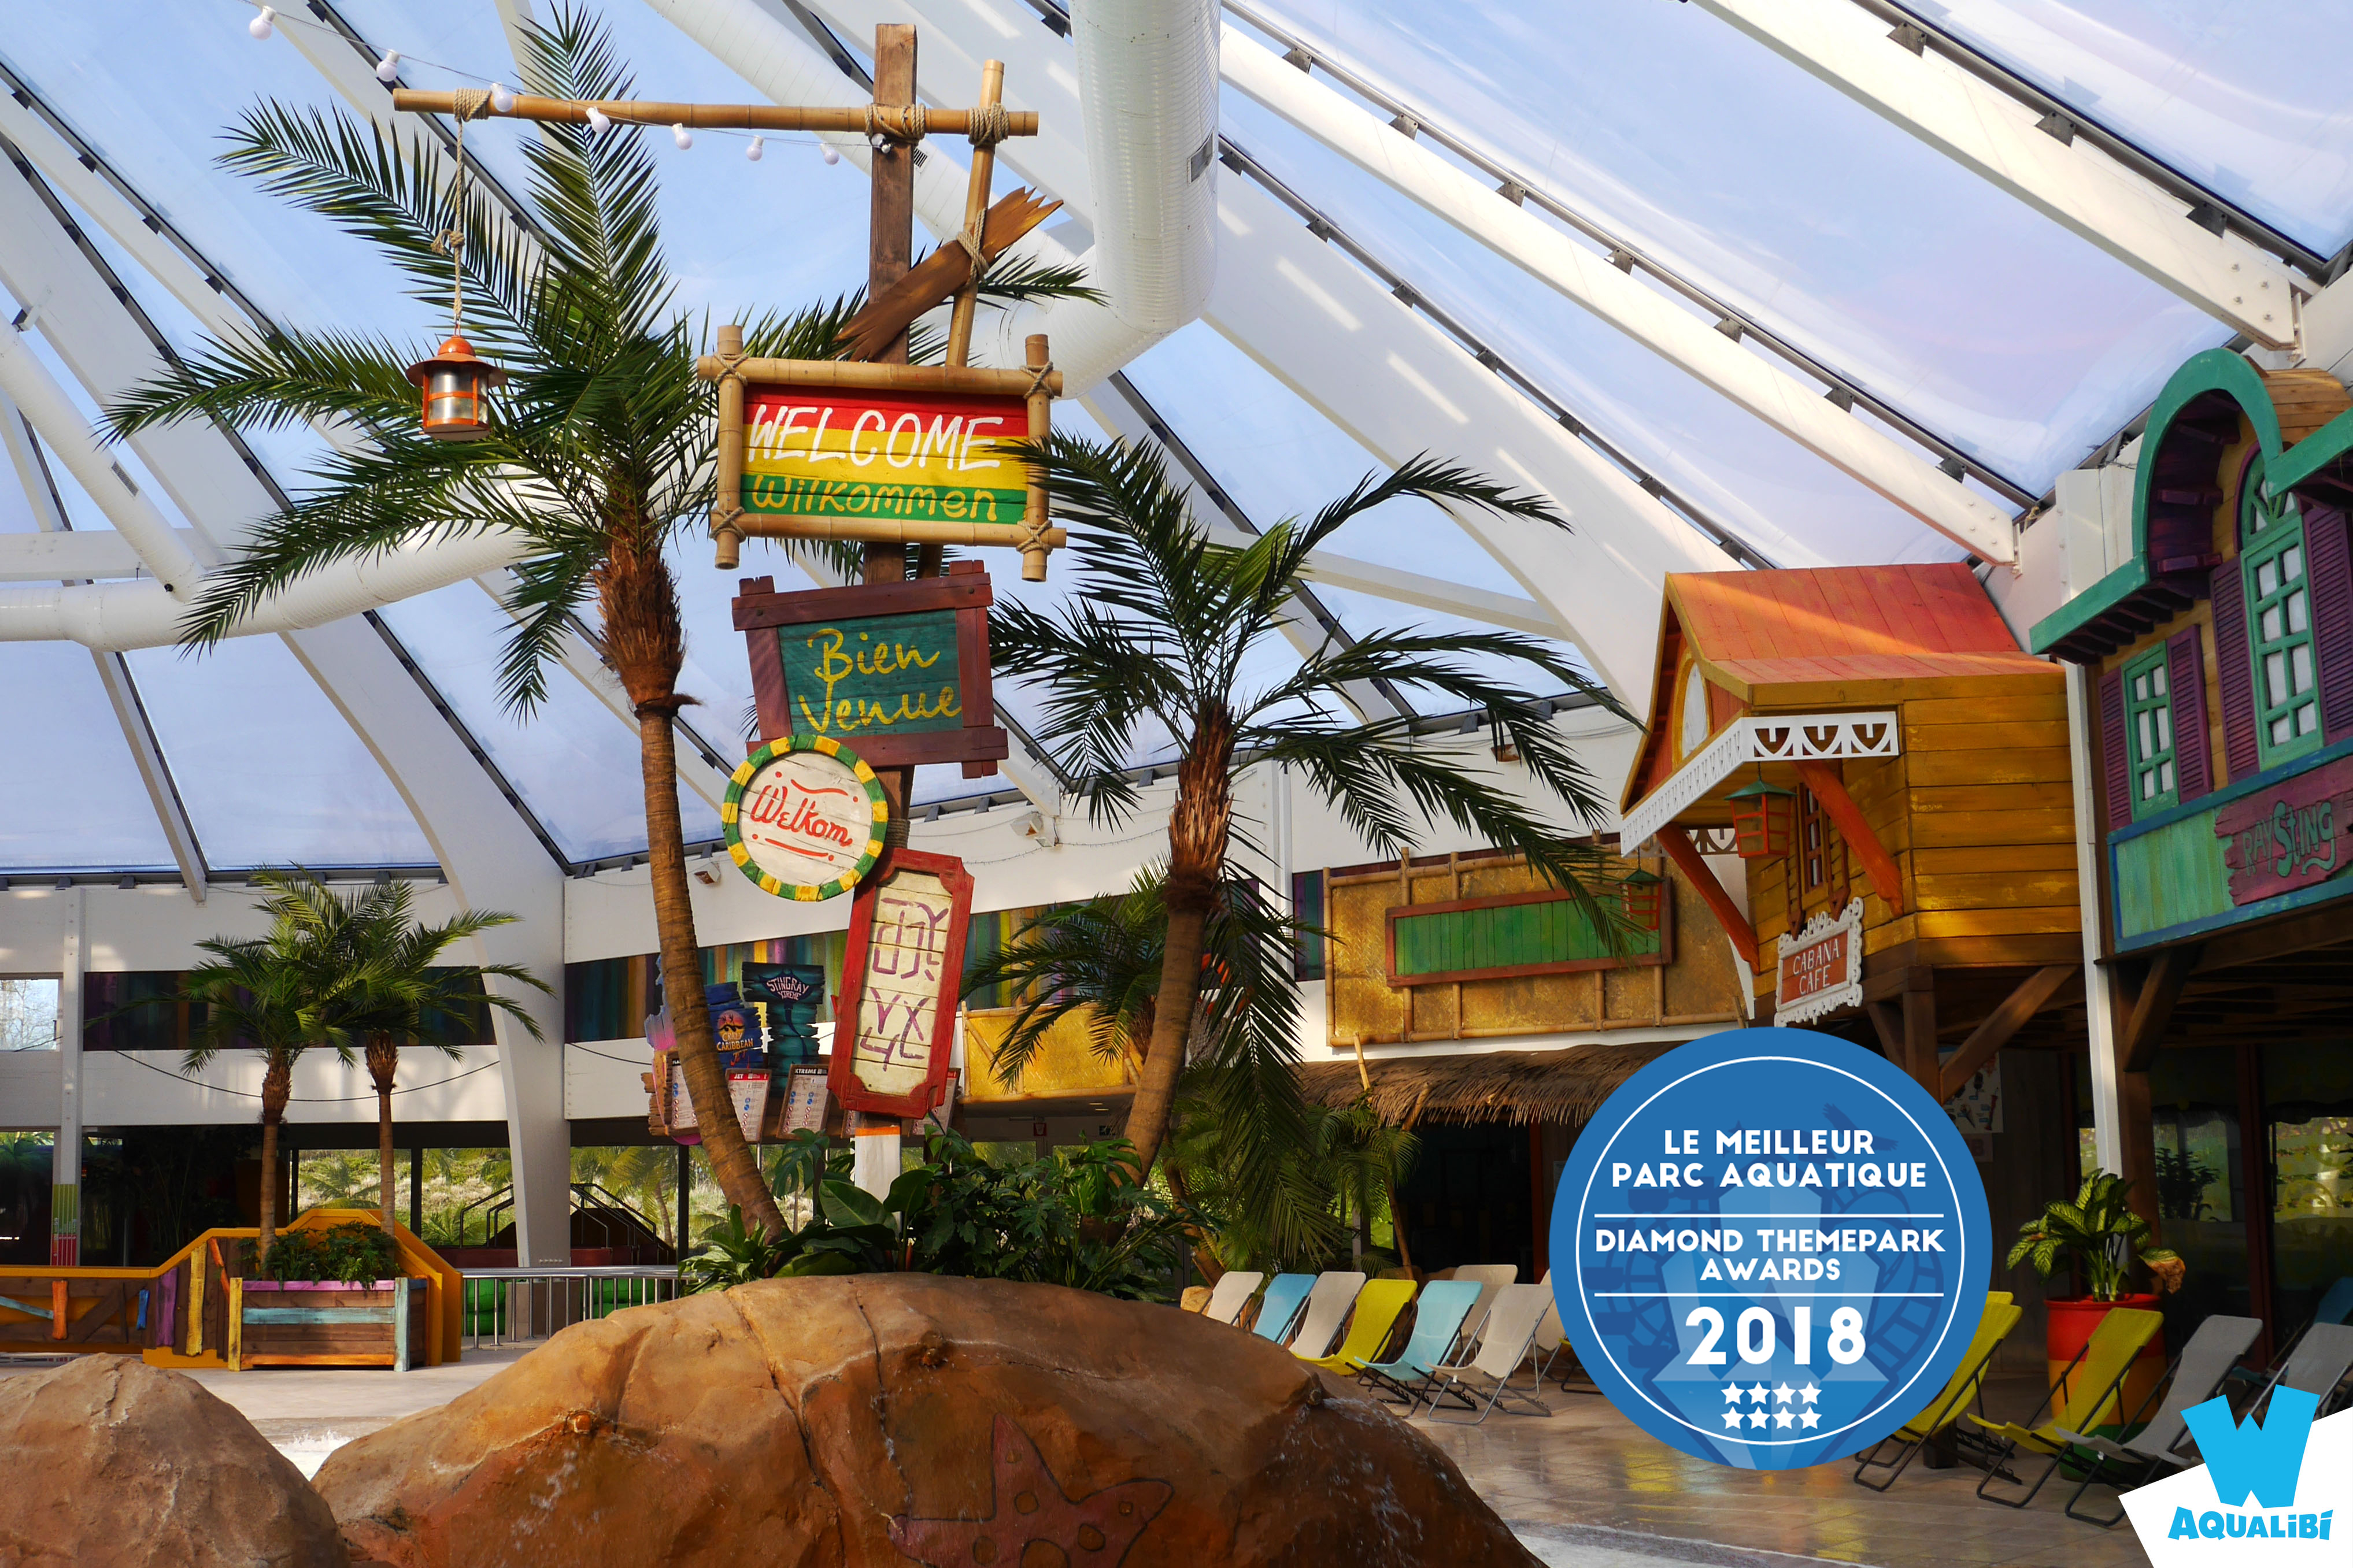 Aqualibi Diamond Themepark Awards 2018